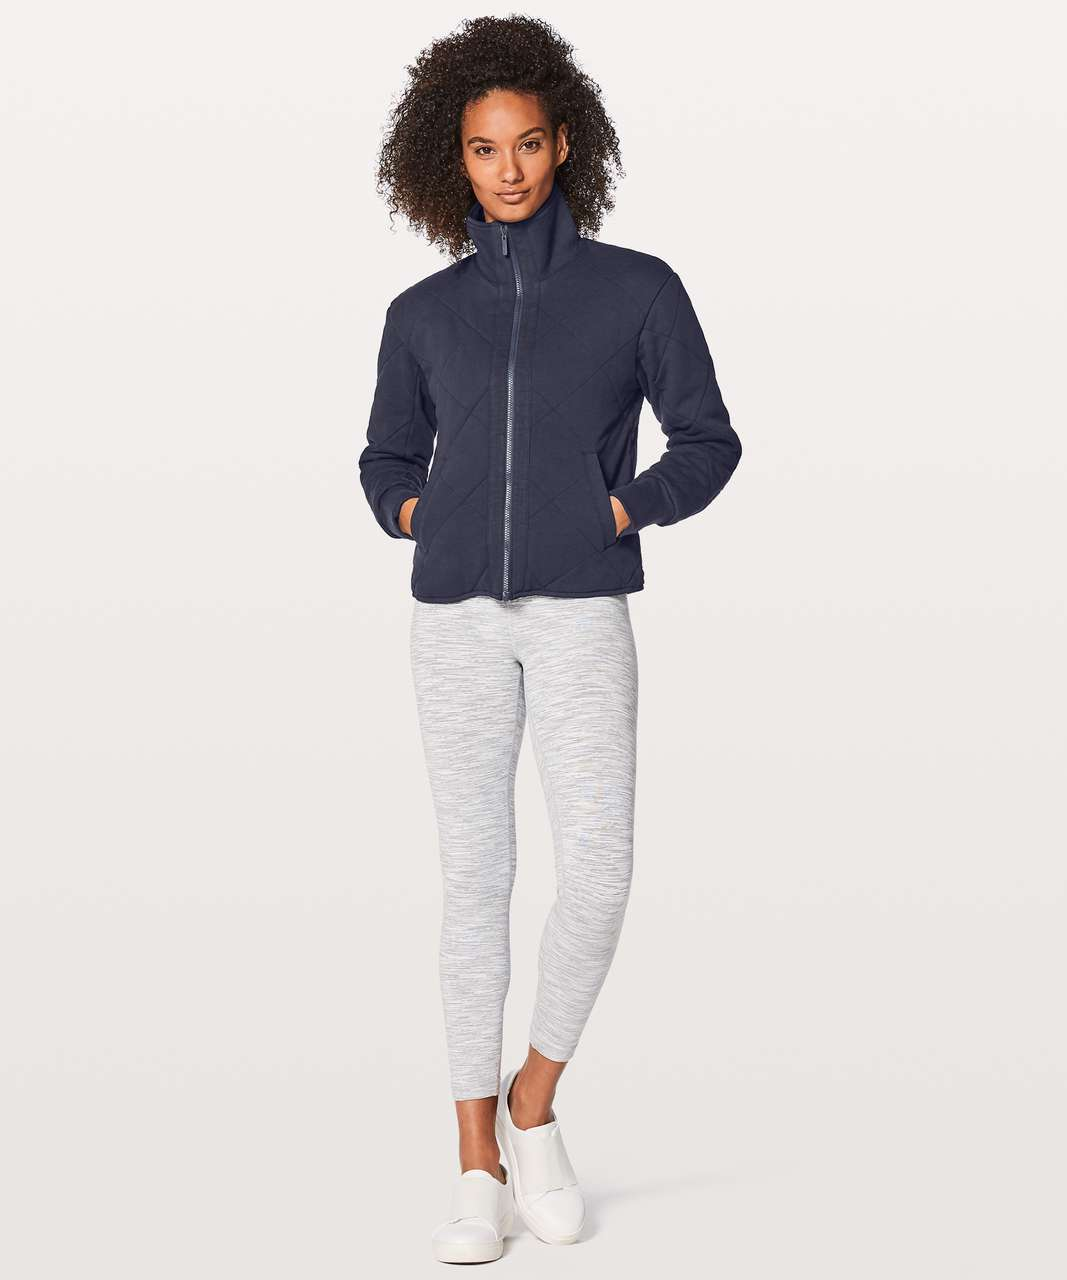 Lululemon Forever Warm Jacket - Midnight Navy